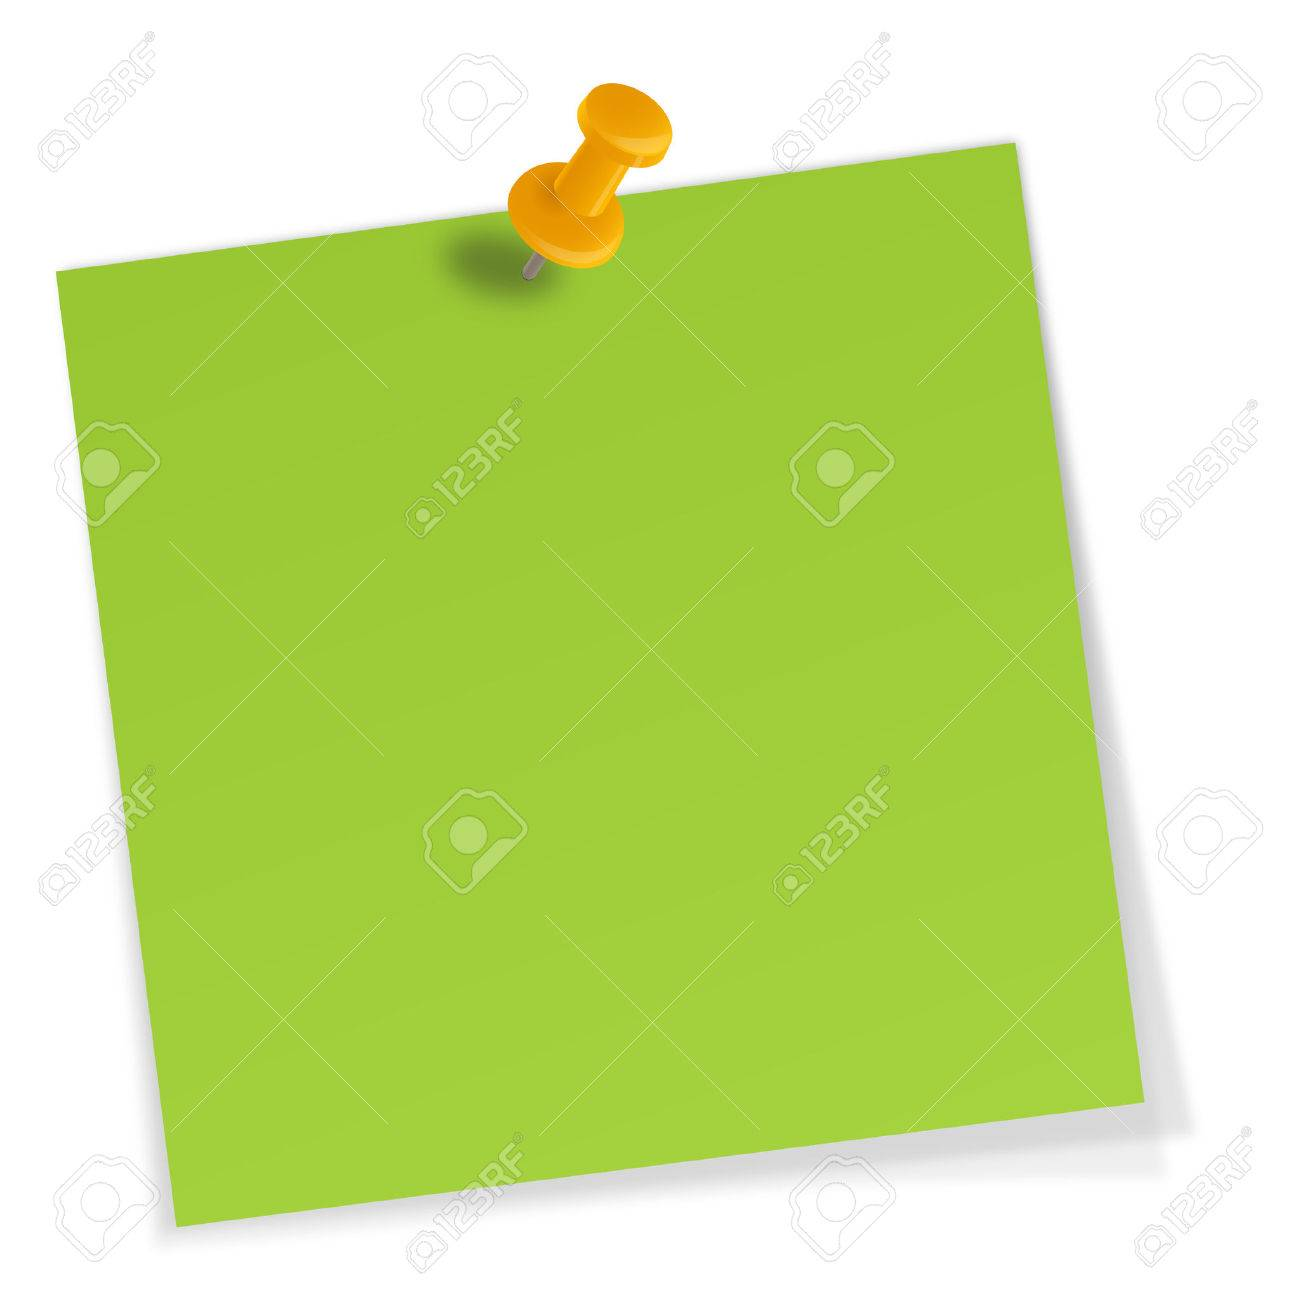 Free vector graphic sticky note note info paper free image on - Vector Sticky Note With Pin Needle